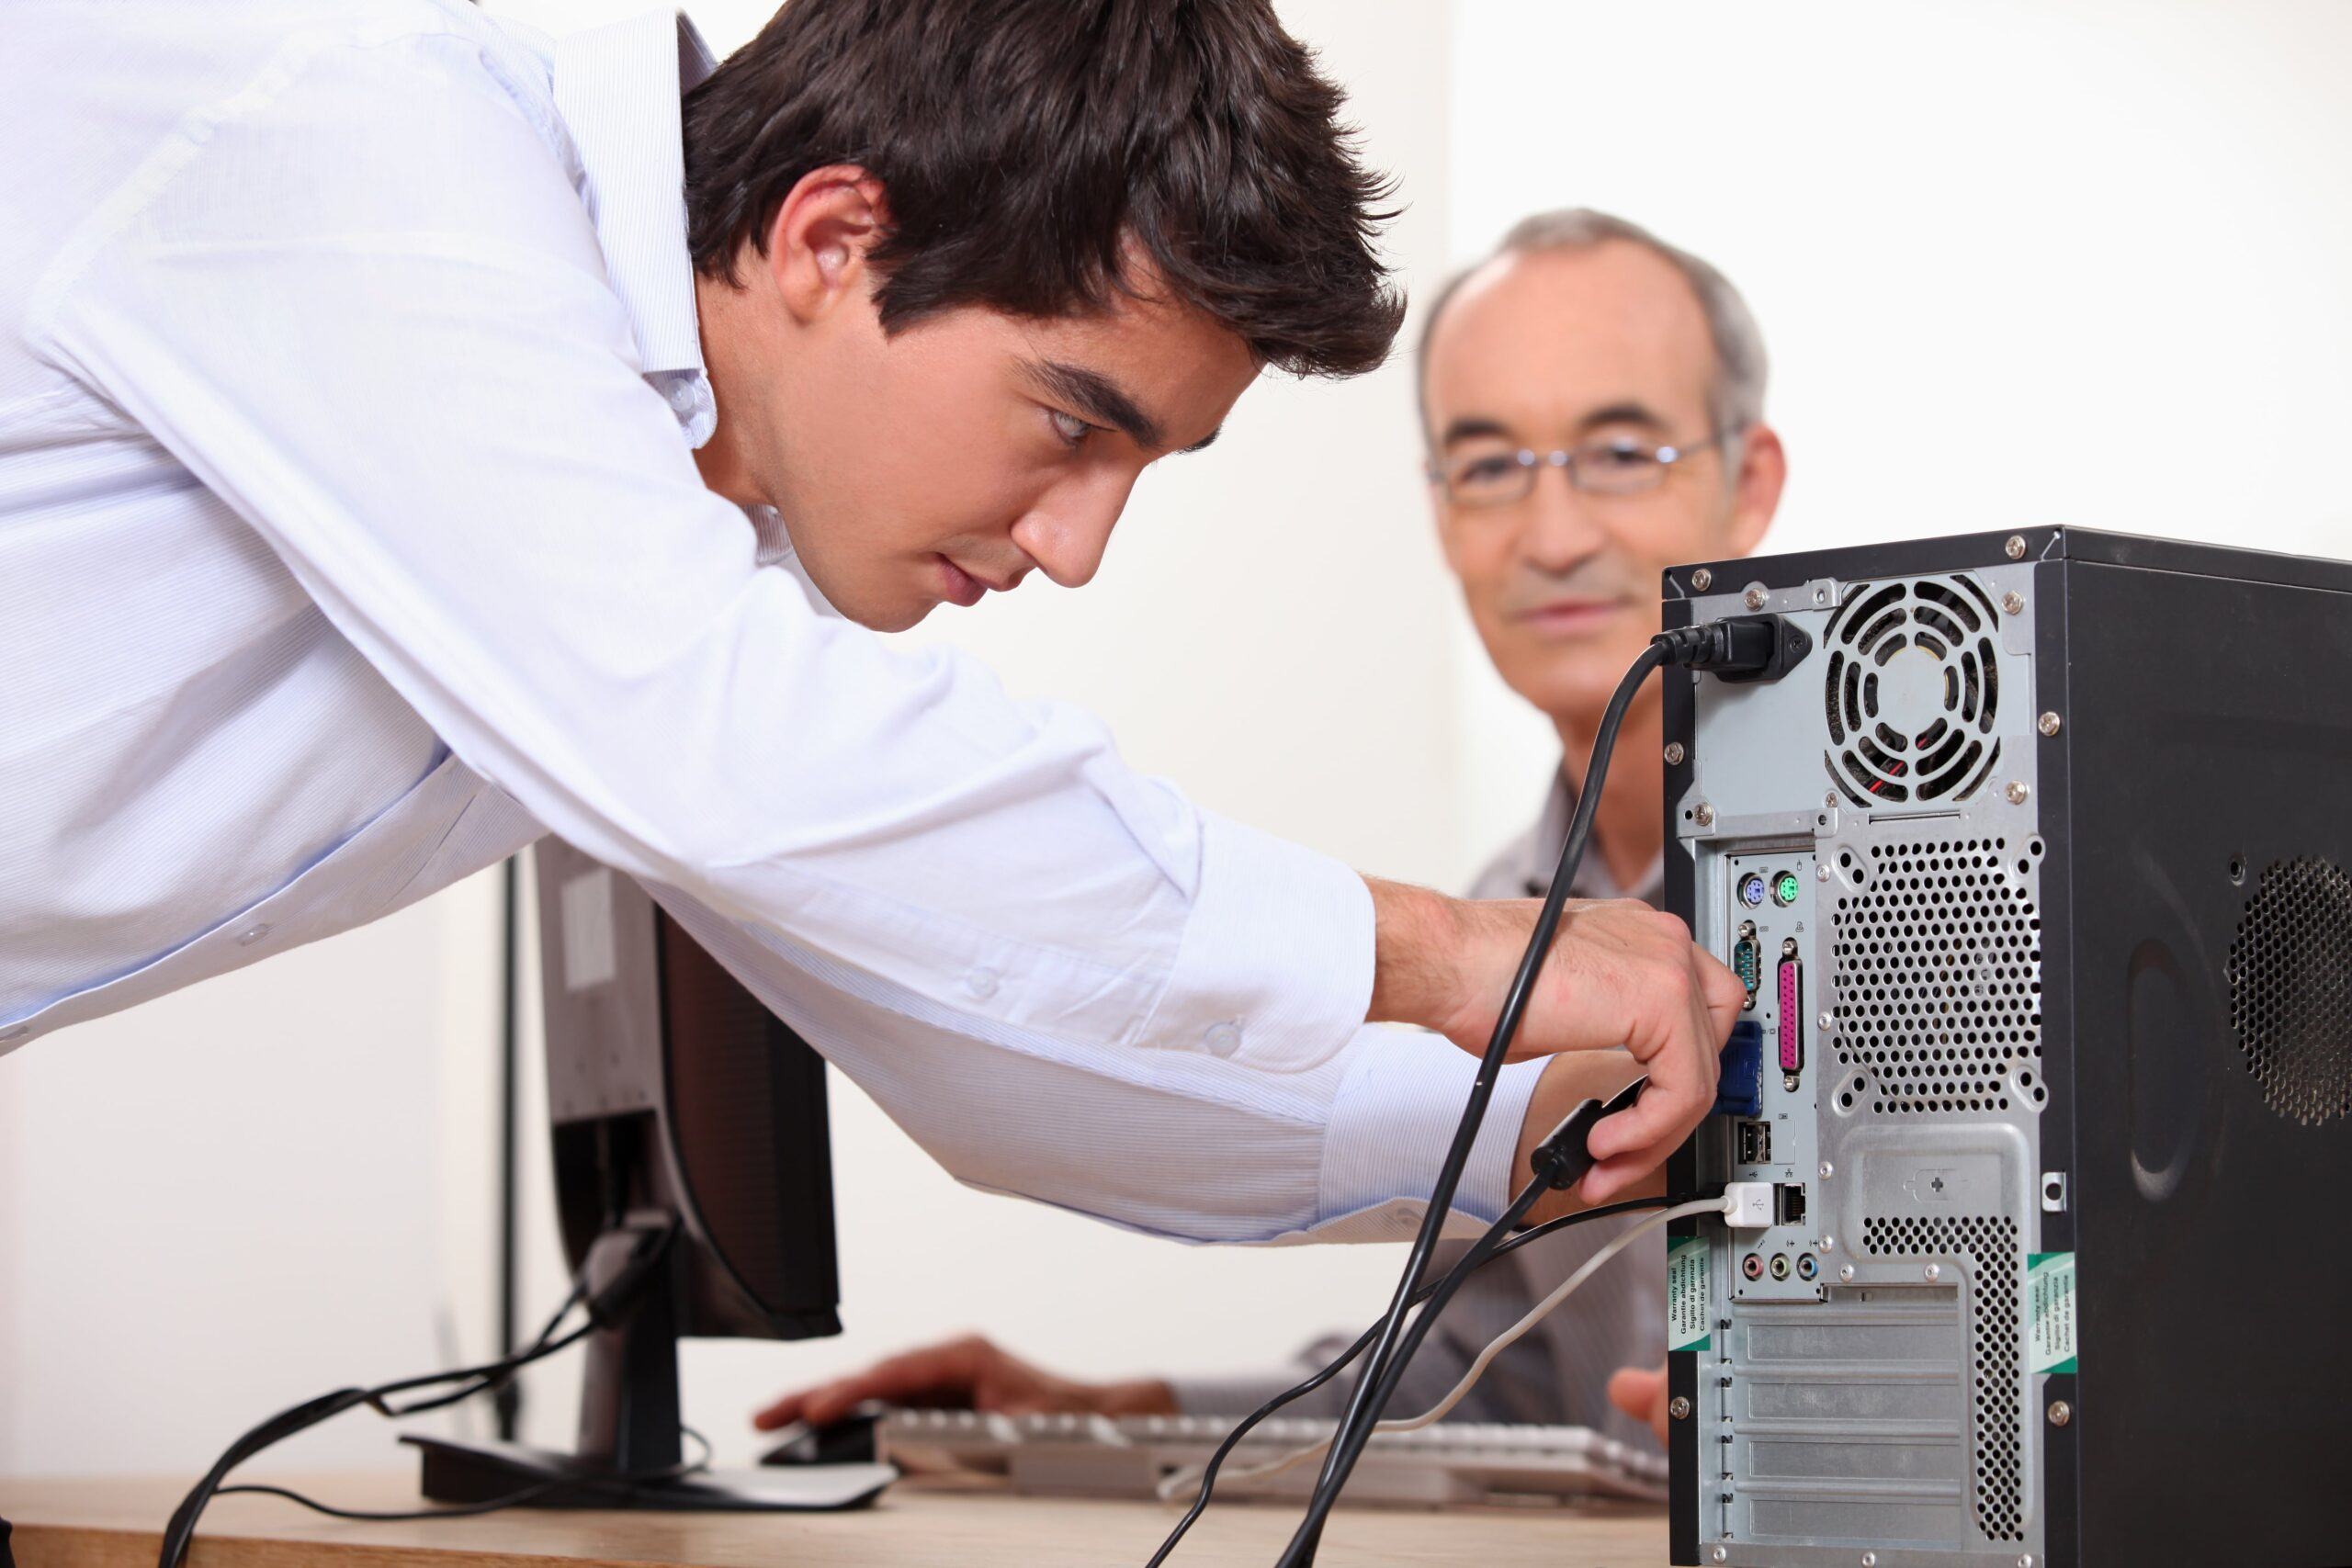 computer repair - Perry Computer Services Cape Cod